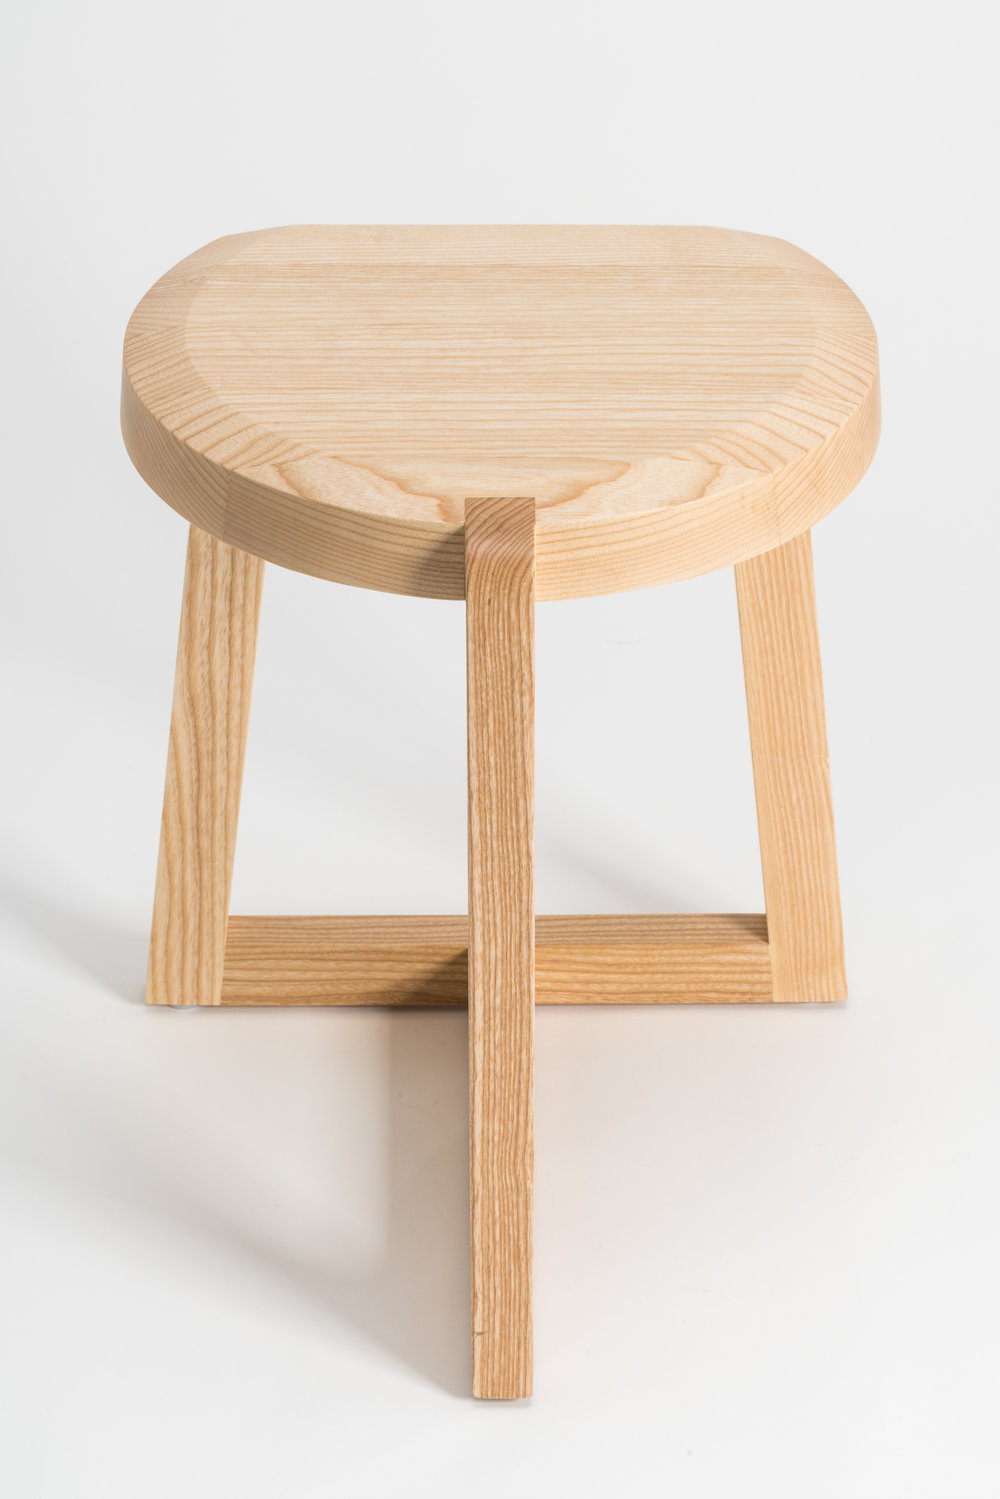 Oyster Stool designed by Geckeler Michels